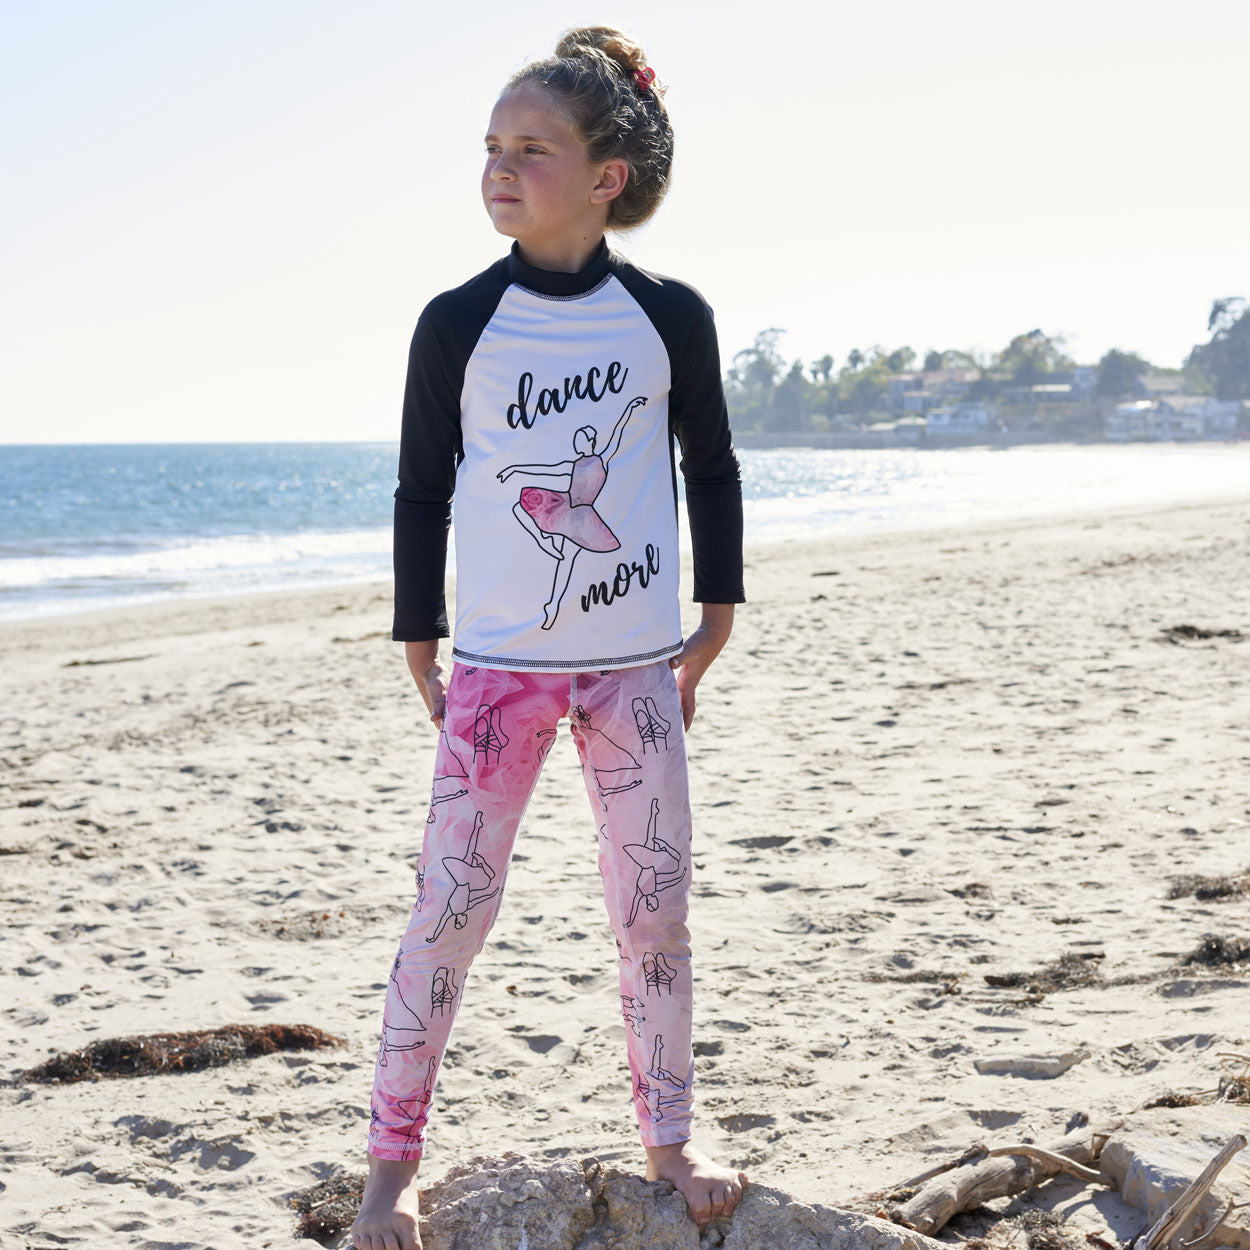 Ballerina Long Sleeve Rash Guard Top UPF 50+ for Girls